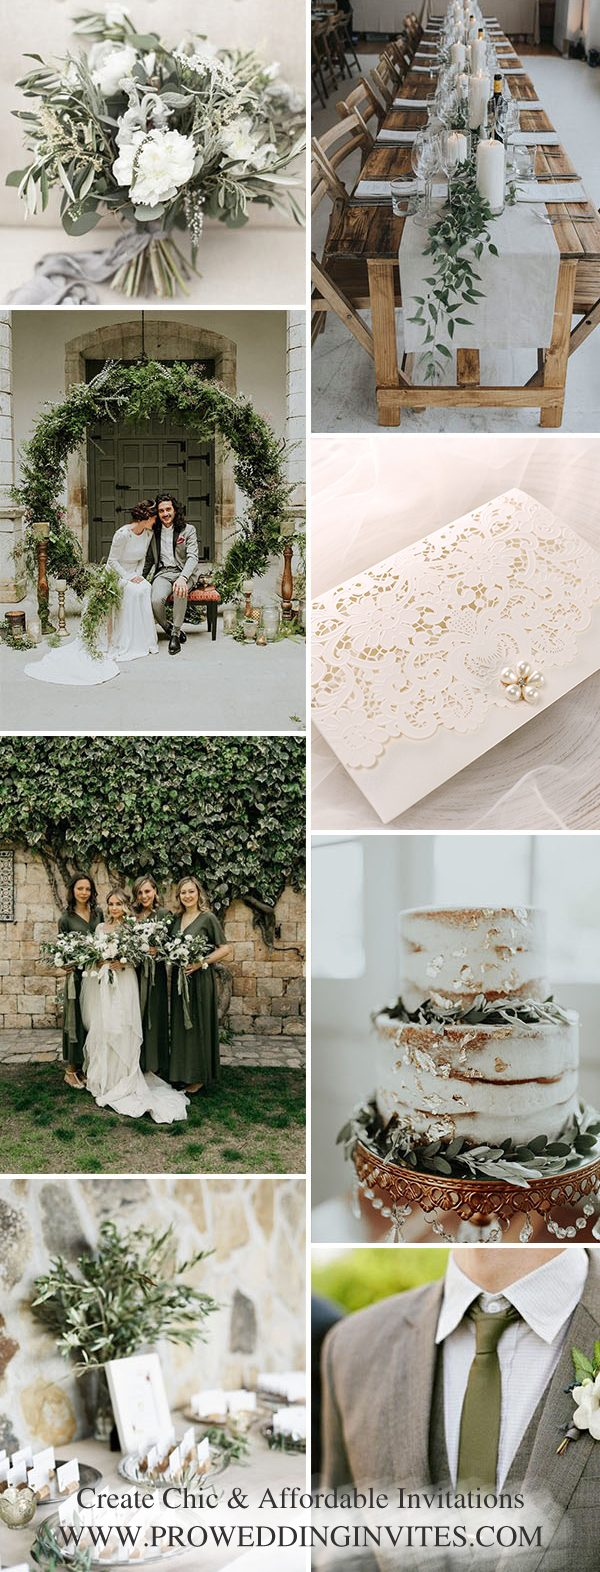 The Best Gold Wedding Colors Combos for 2021: Gold + Green